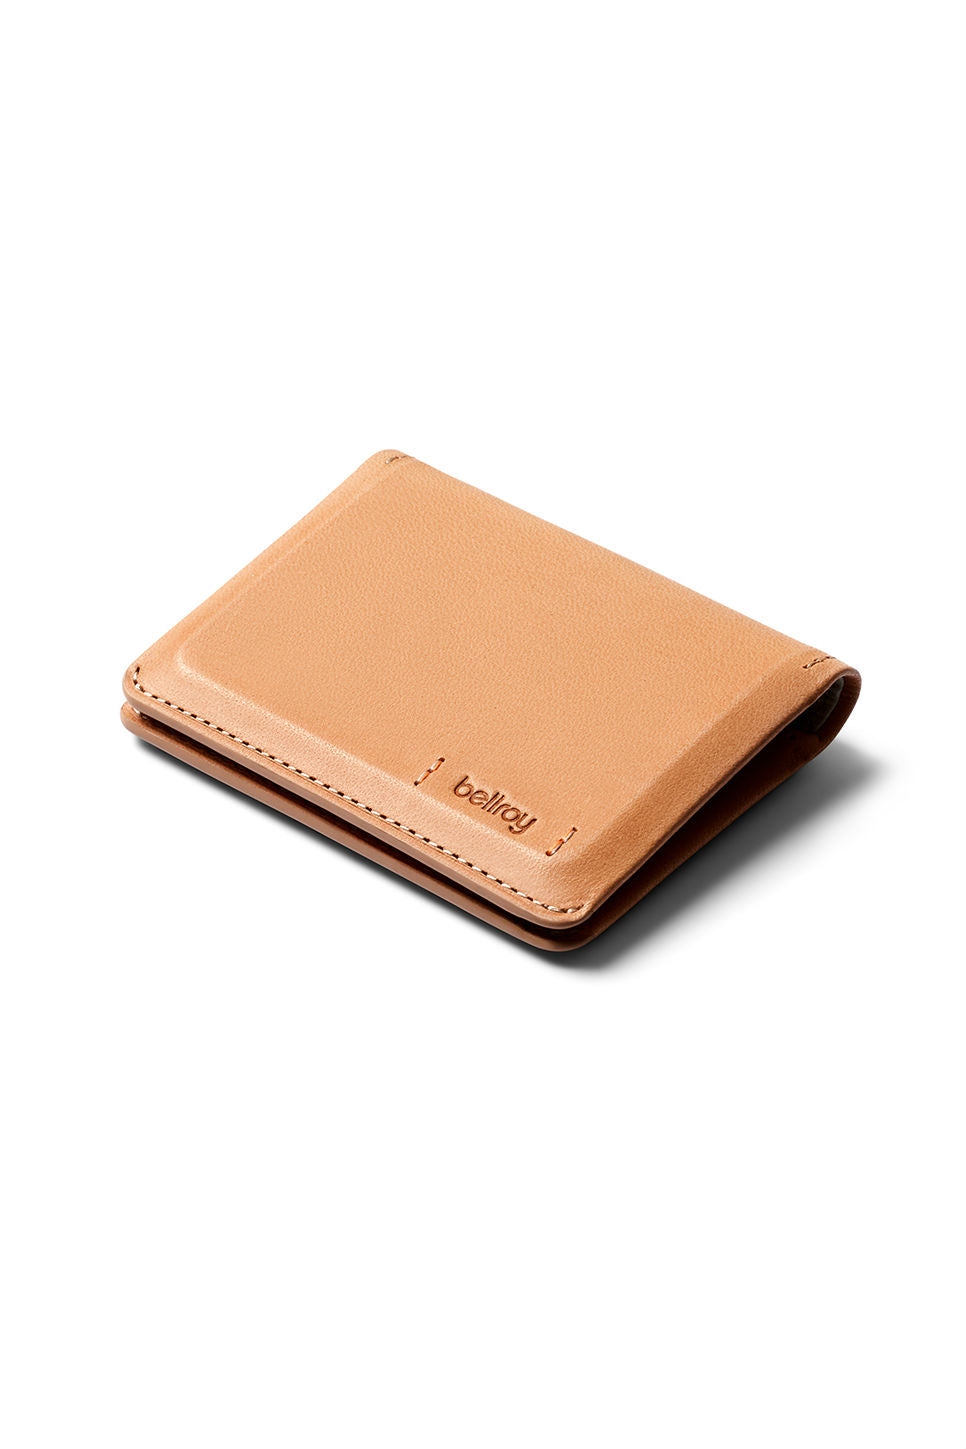 Bellroy - Slim Sleeve Premium - Natural